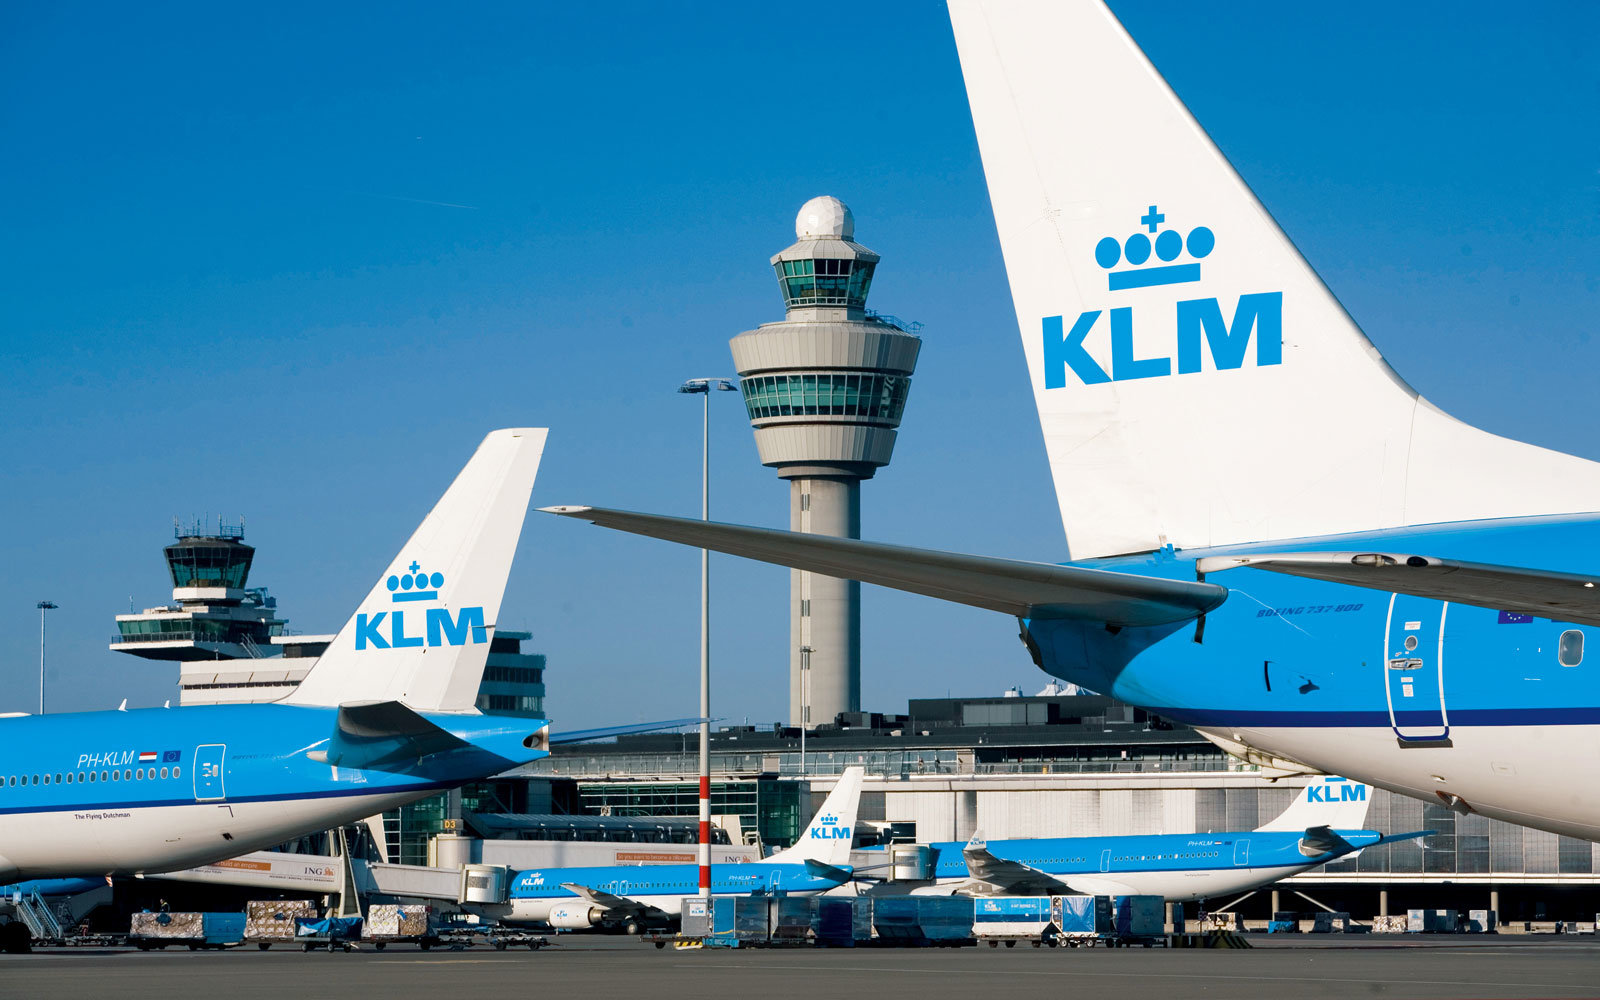 KLM-airplane-AIRLINES117.jpg